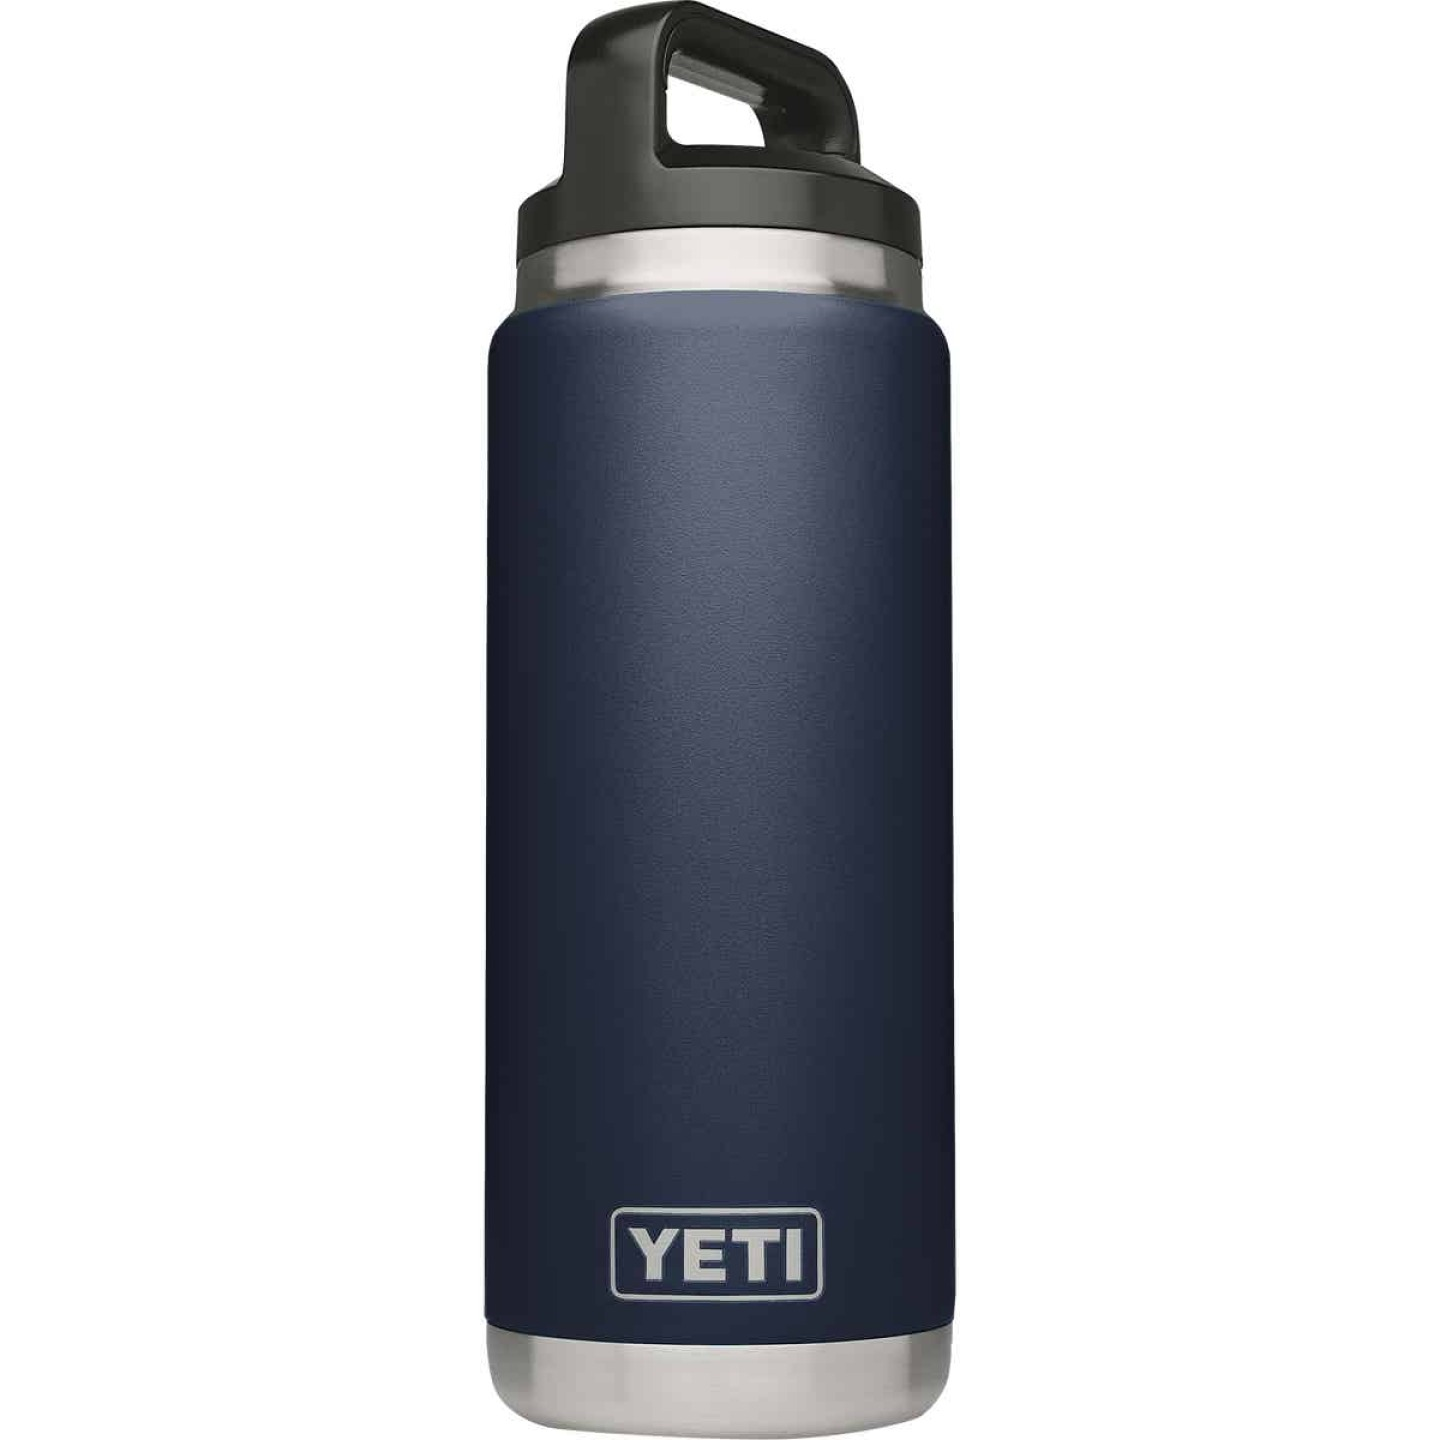 Yeti Rambler 26 Oz. Navy Blue Stainless Steel Insulated Vacuum Bottle Image 1